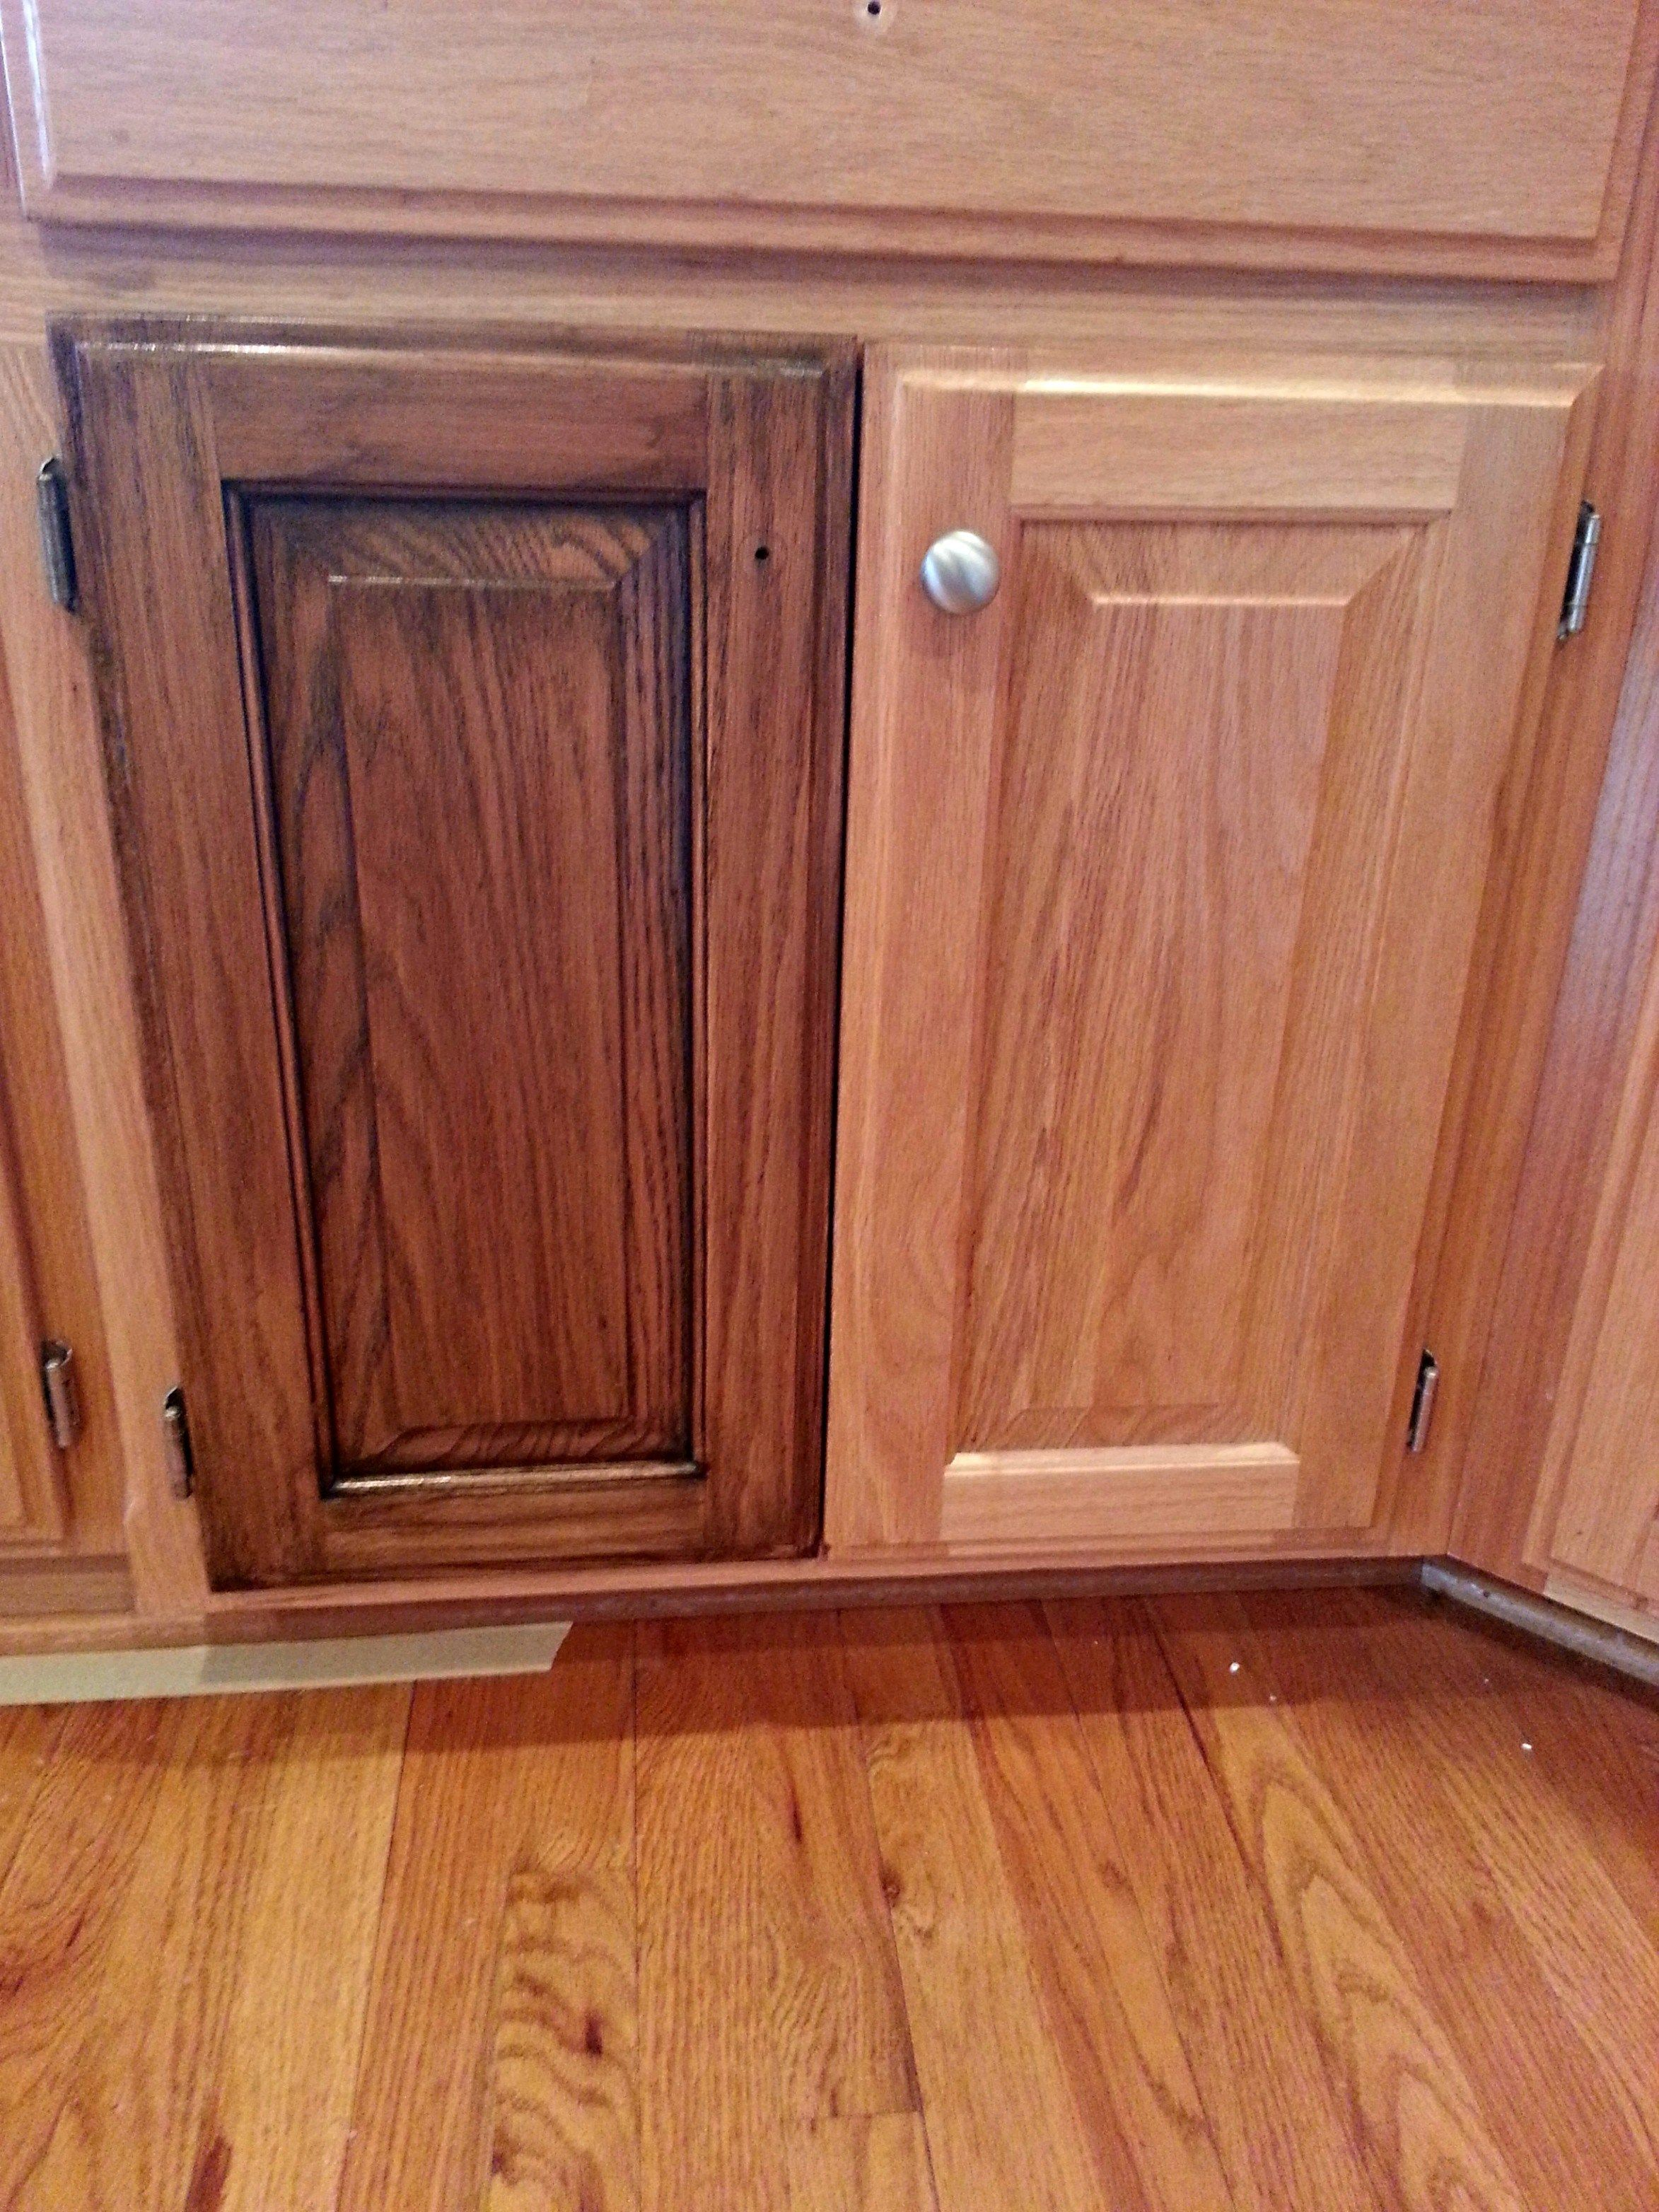 Change Your Tired, Oak Kitchen Cabinets To A Dark Walnut Stain!